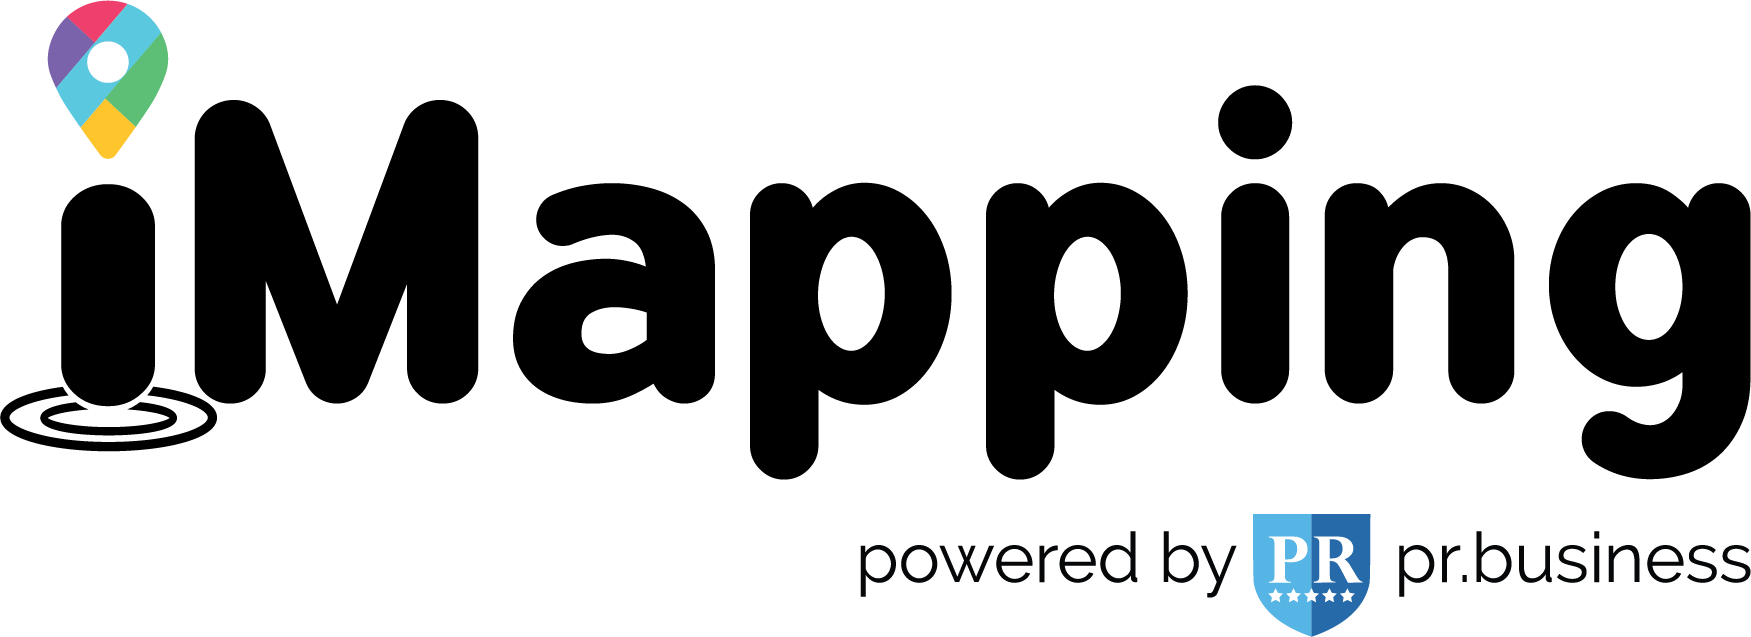 iMapping, powered by pr.business